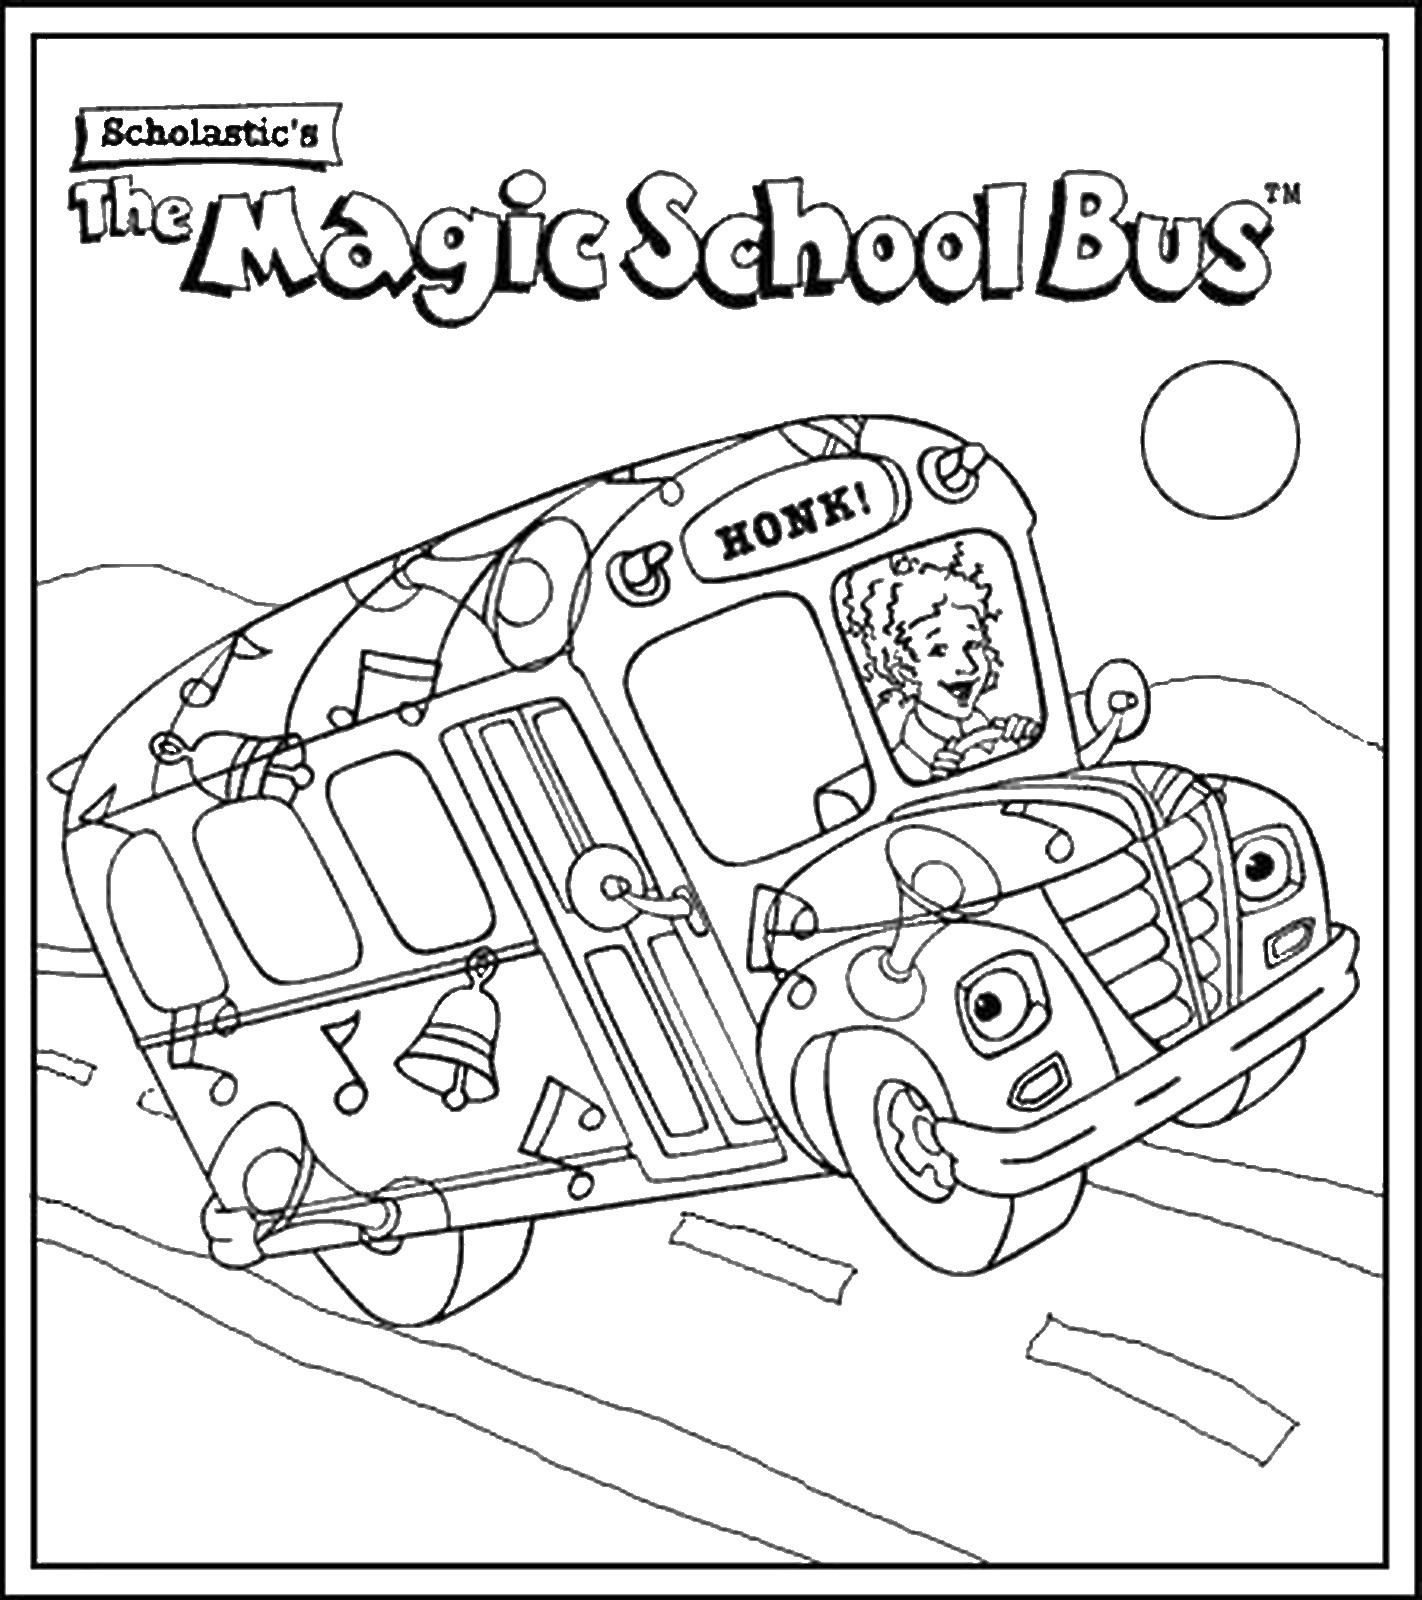 Magic school bus coloring pictures - The Magic School Bus Coloring Pages